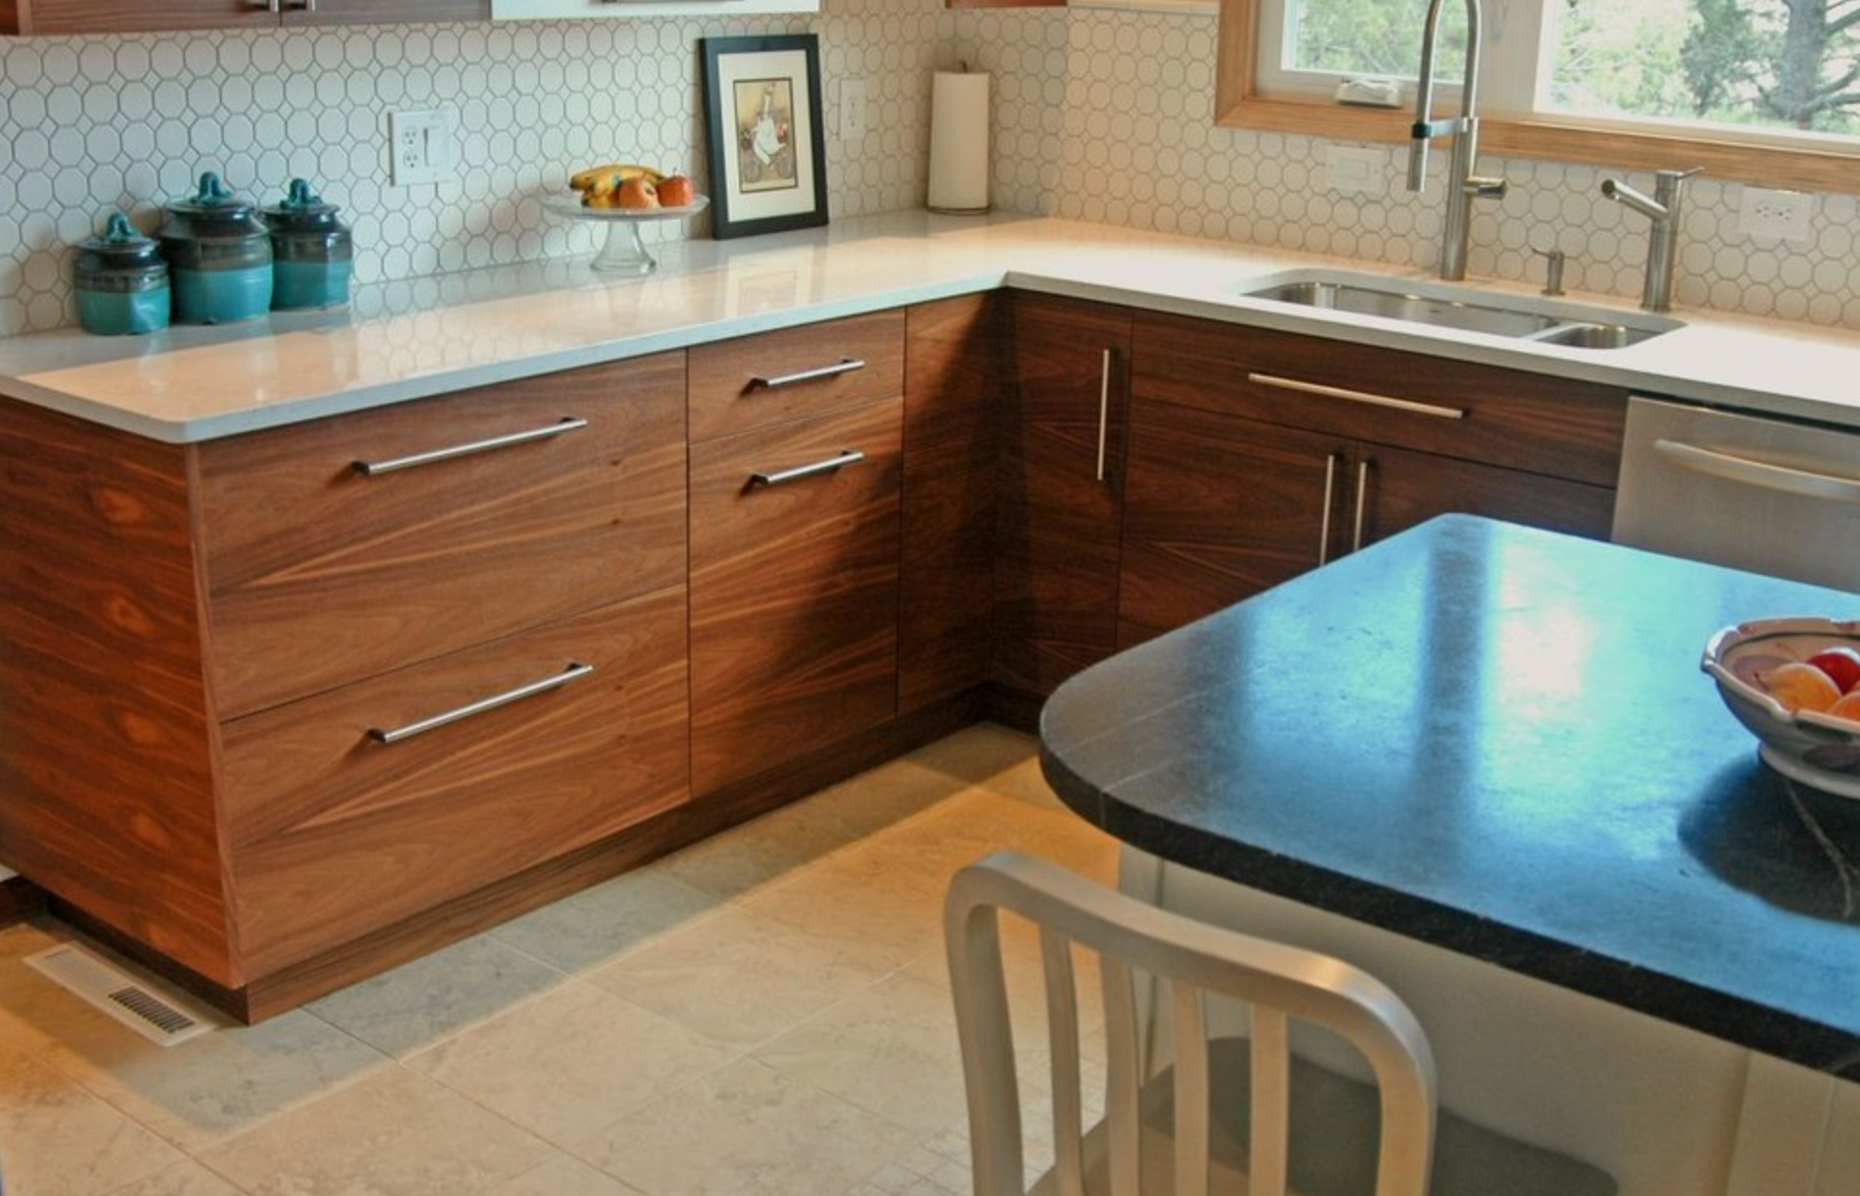 Beautiful Top Knobs Pennington Bar Pulls for a Contemporary Kitchen KW29